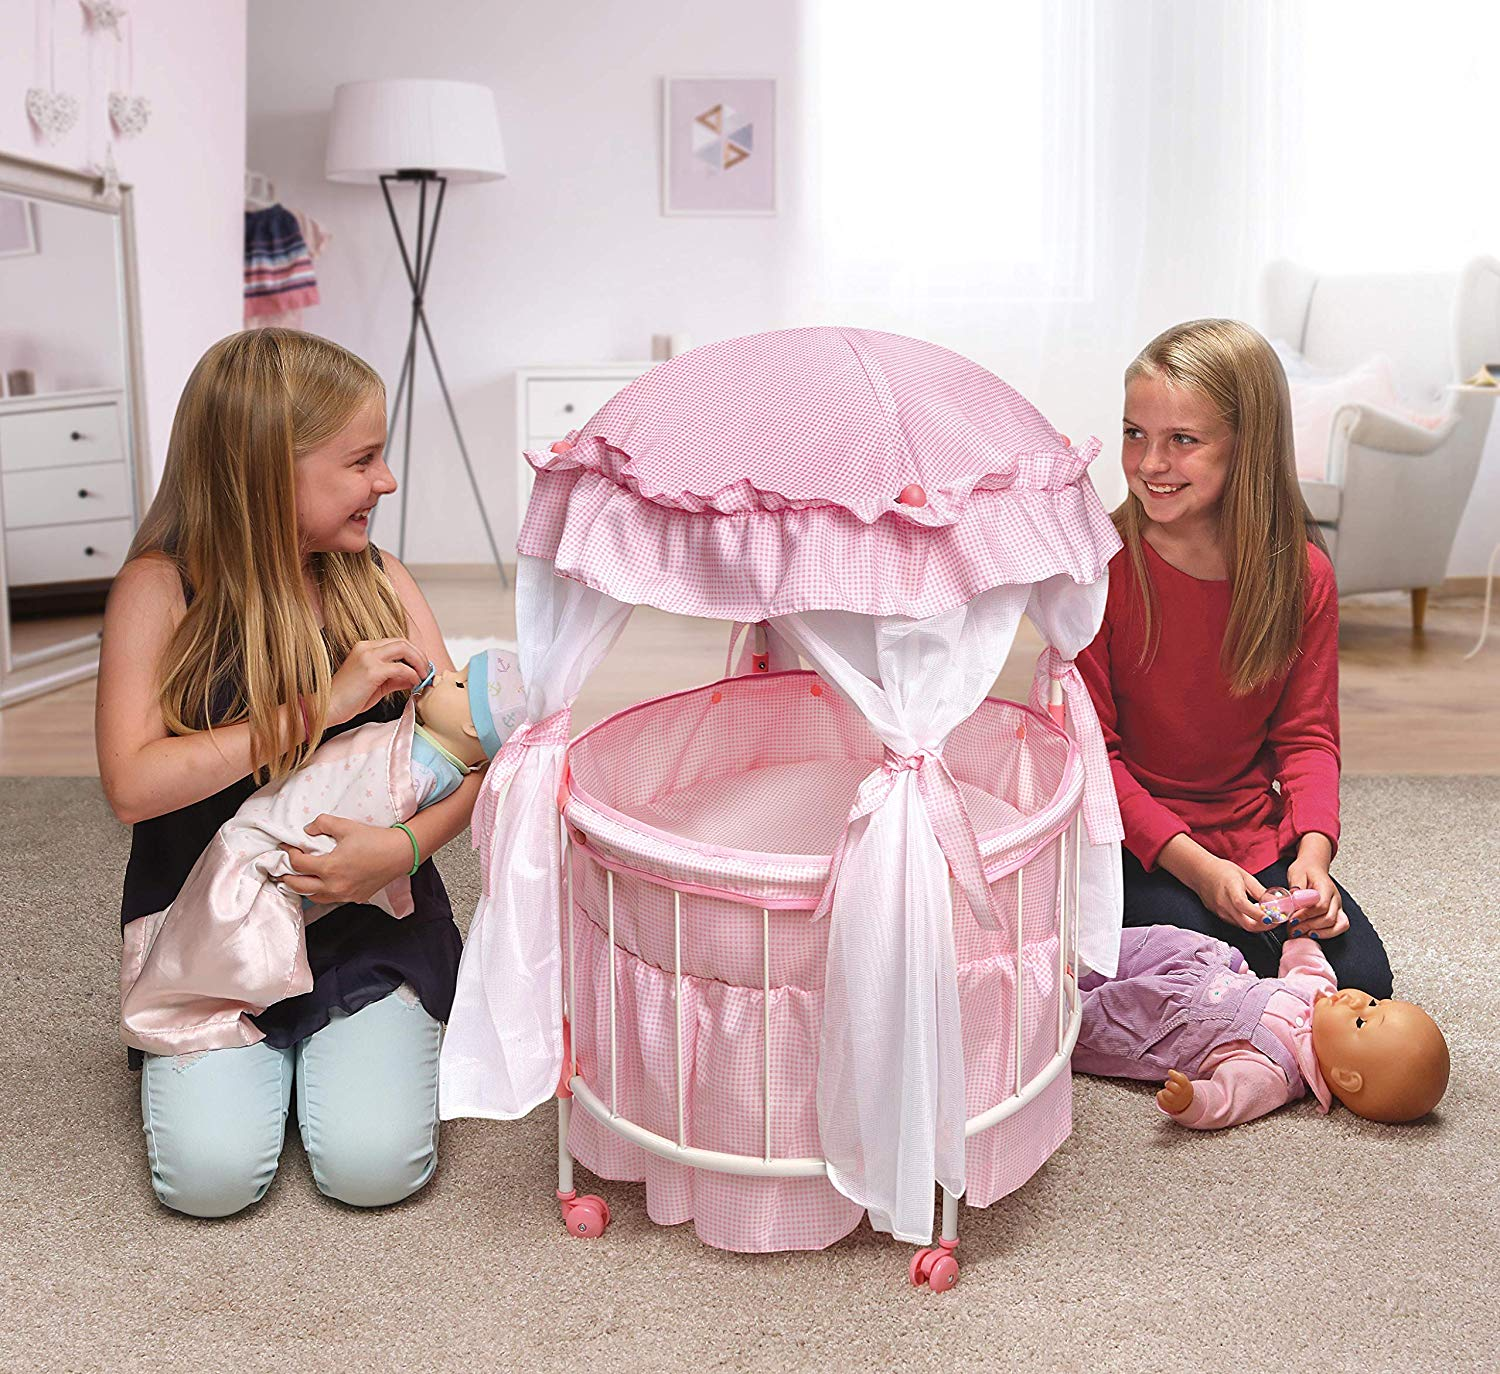 This pink-and-white gingham-decorated steel-metal-and-plastic round crib that comes complete with inner liner, padded mat